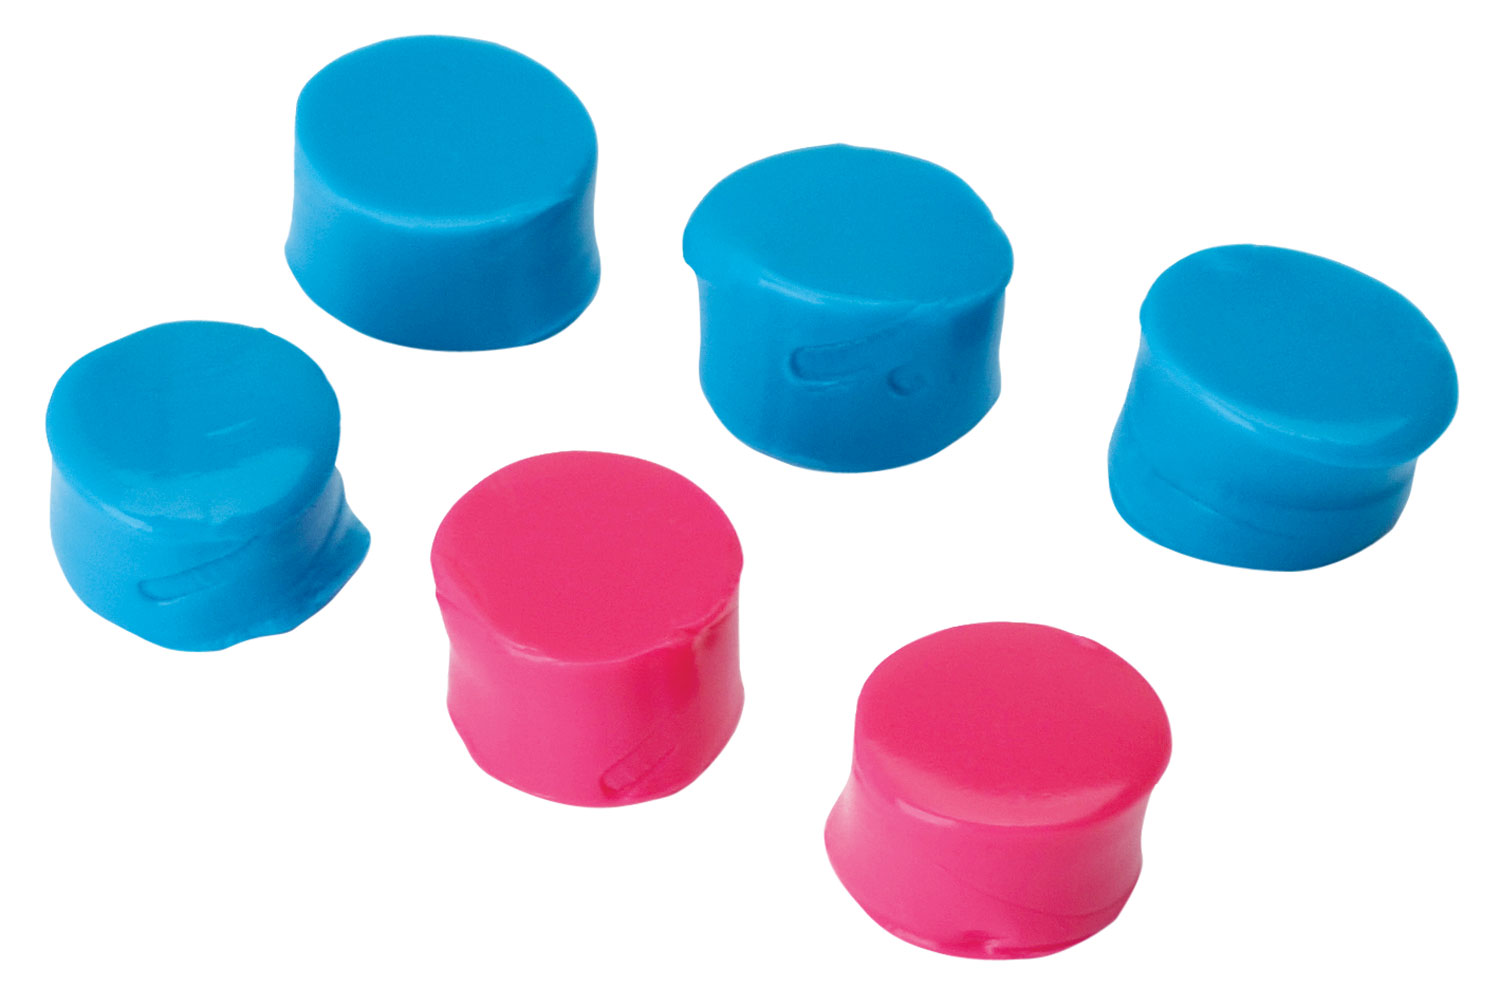 Walkers GWPSILPLGPKTL Silicone Putty   Earplugs 32 dB Pink/Teal